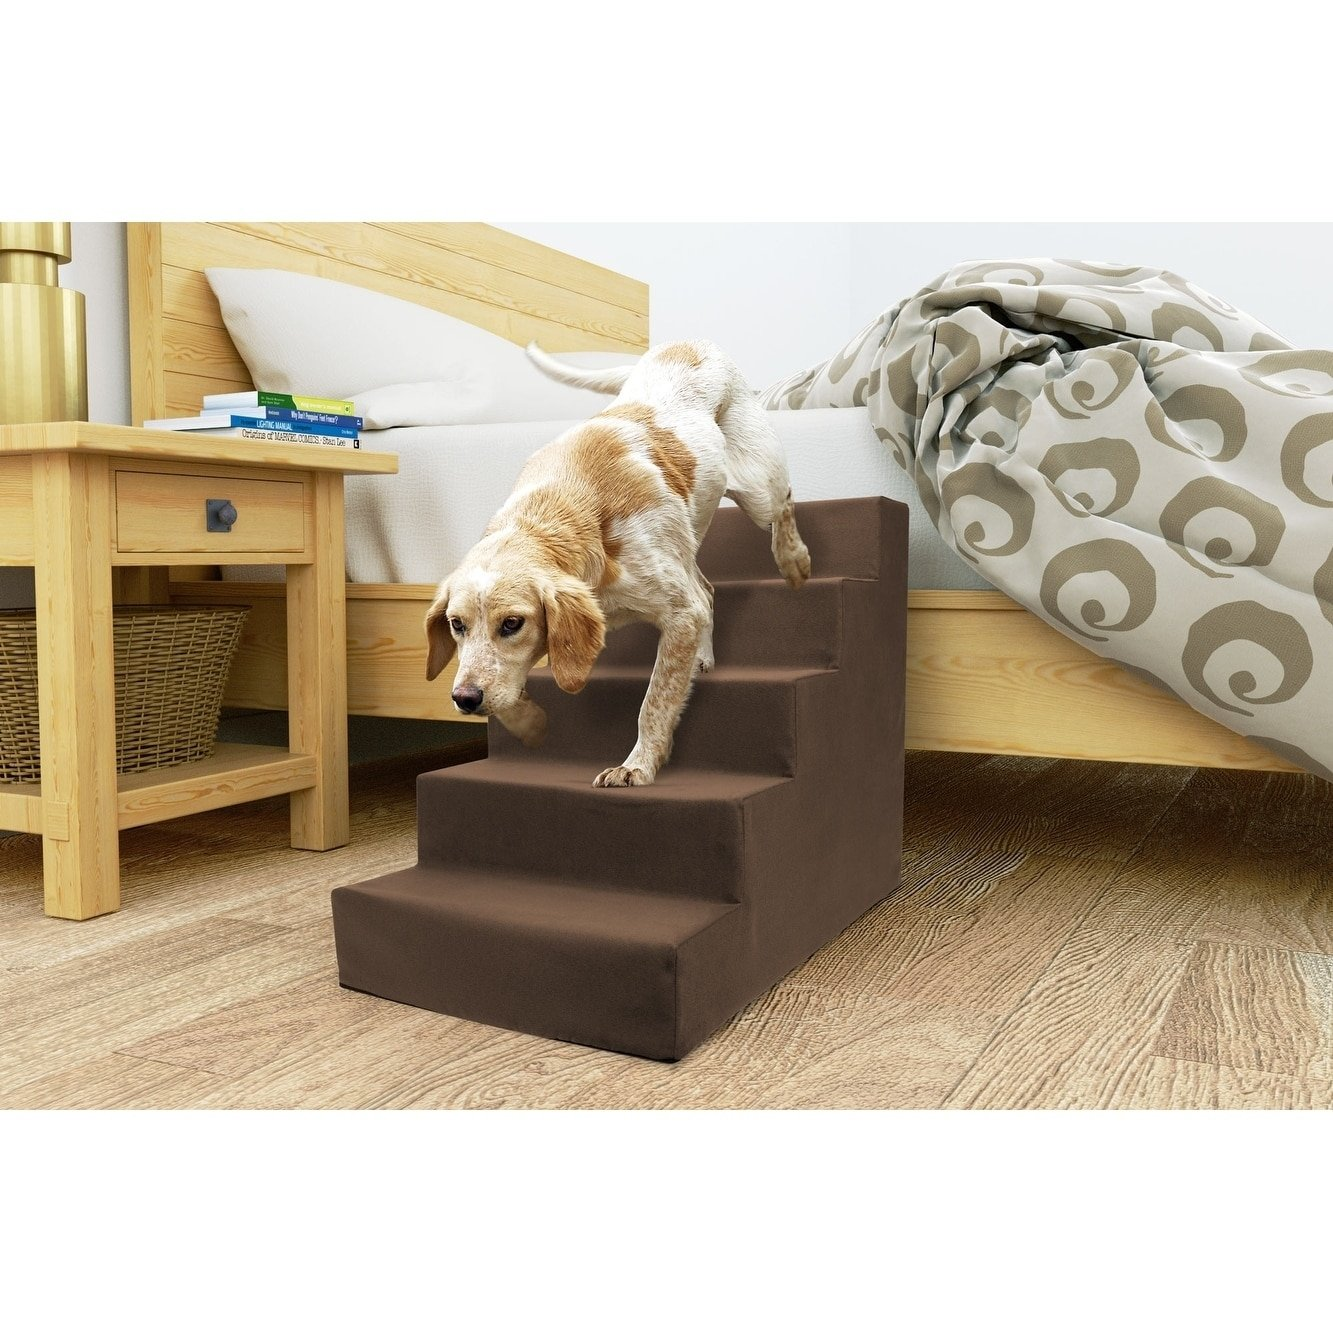 Precious Tails ED2026FSBRN Sherpa High Density Foam Stairs with 5-Steps and Machine Washable Zipper Removable Cover, Brown, 5-Steps